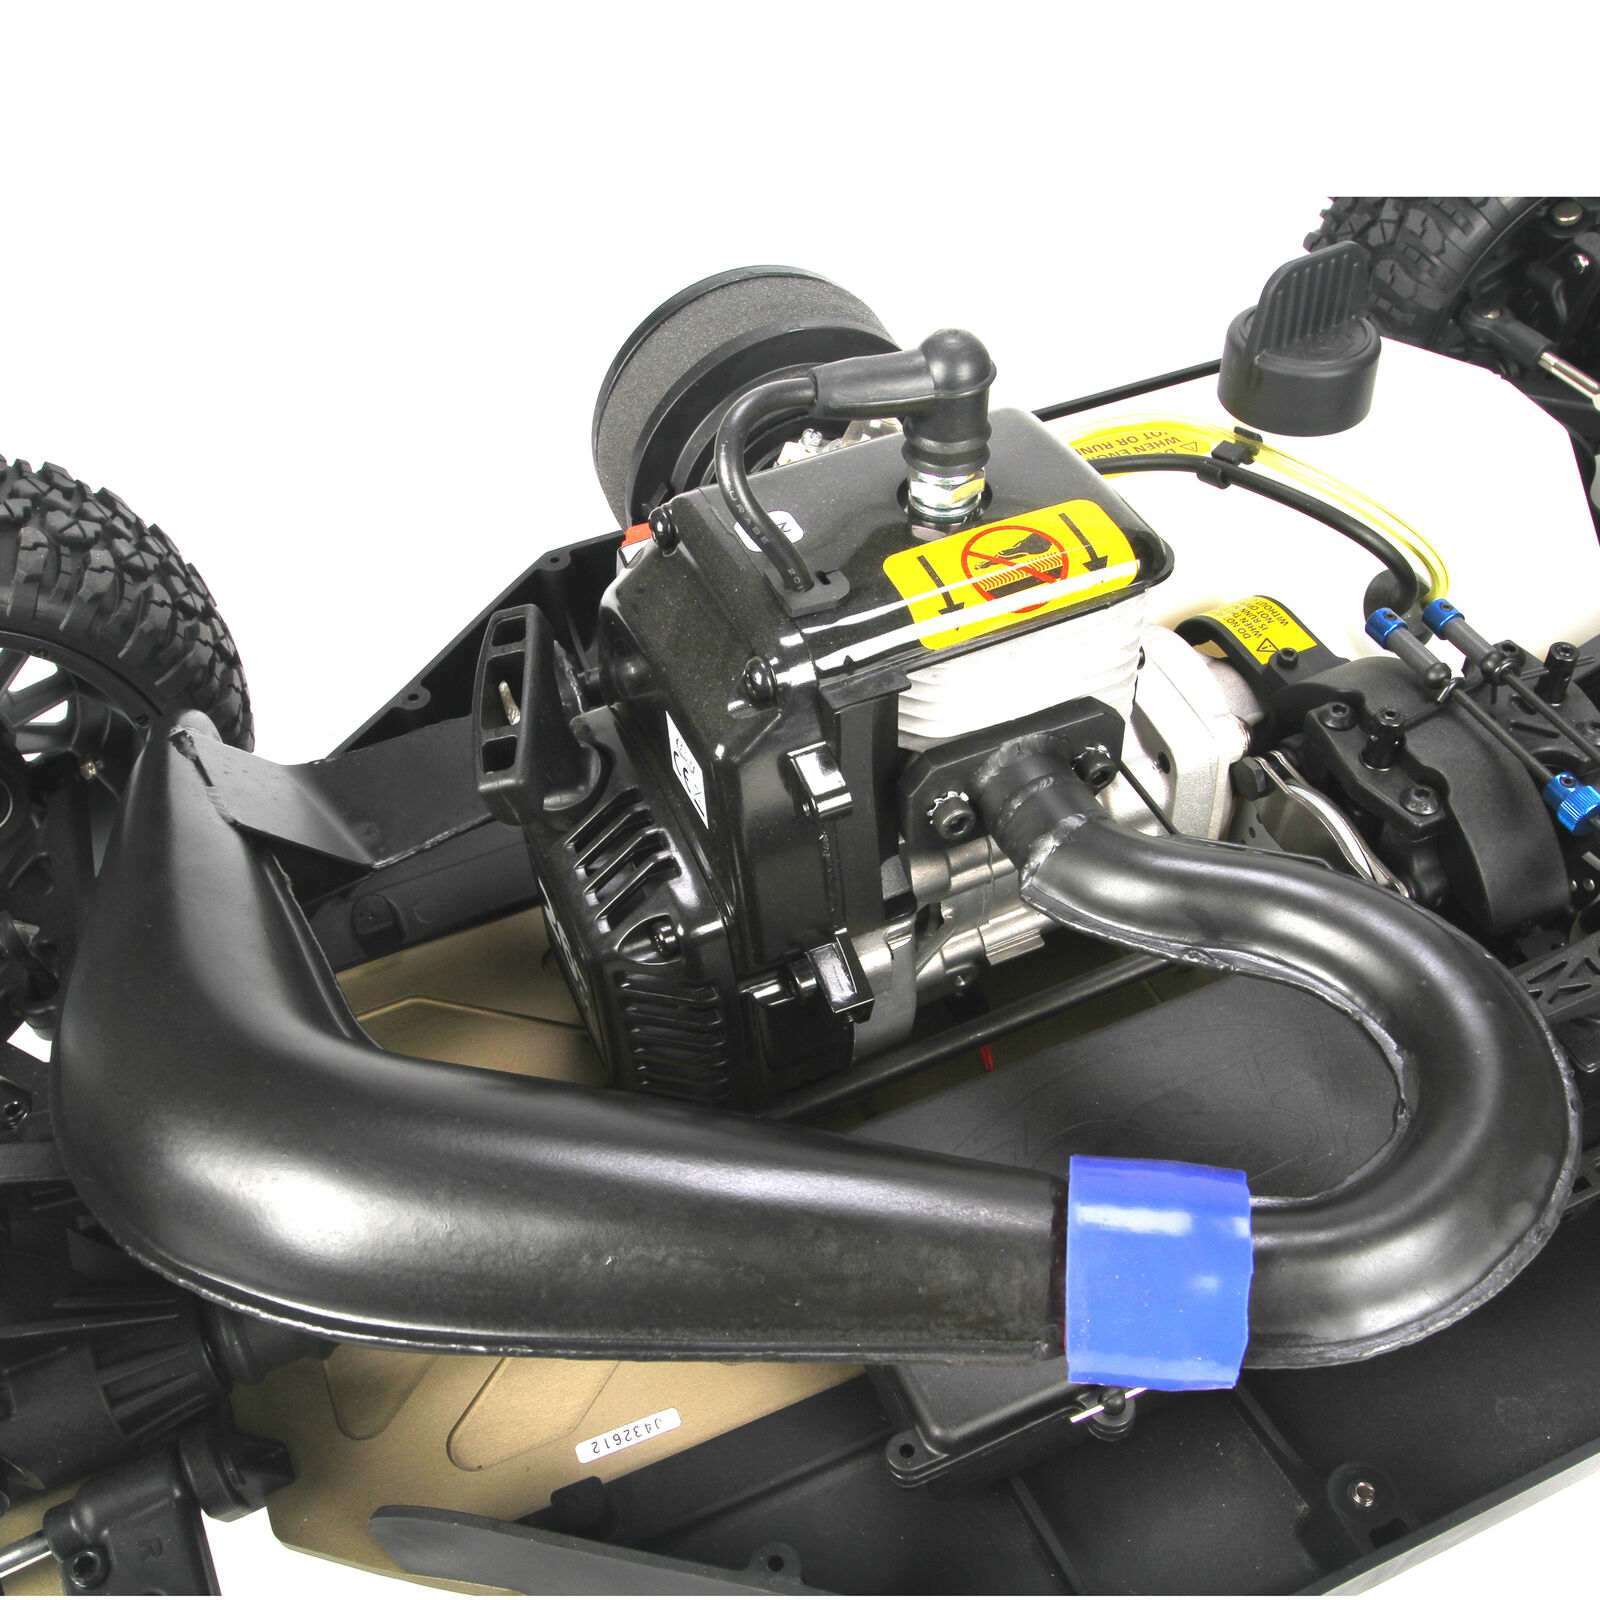 Tuned Exhaust Pipe, 23-30cc Gas Engines: 5IVE-T